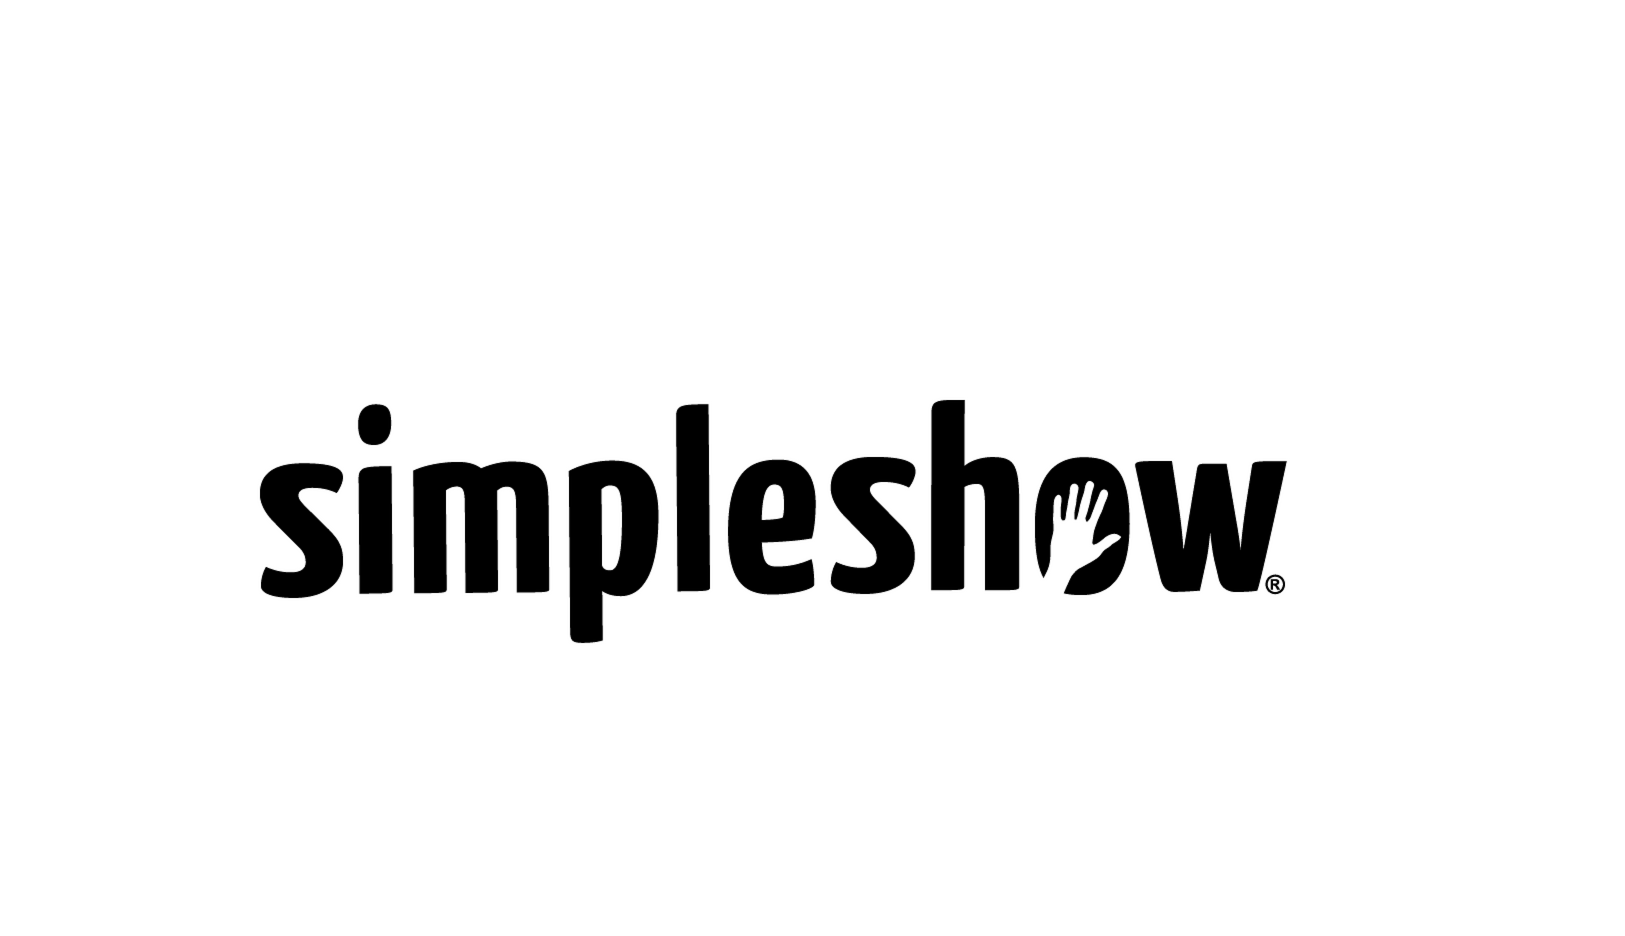 simpleshow UK Ltd